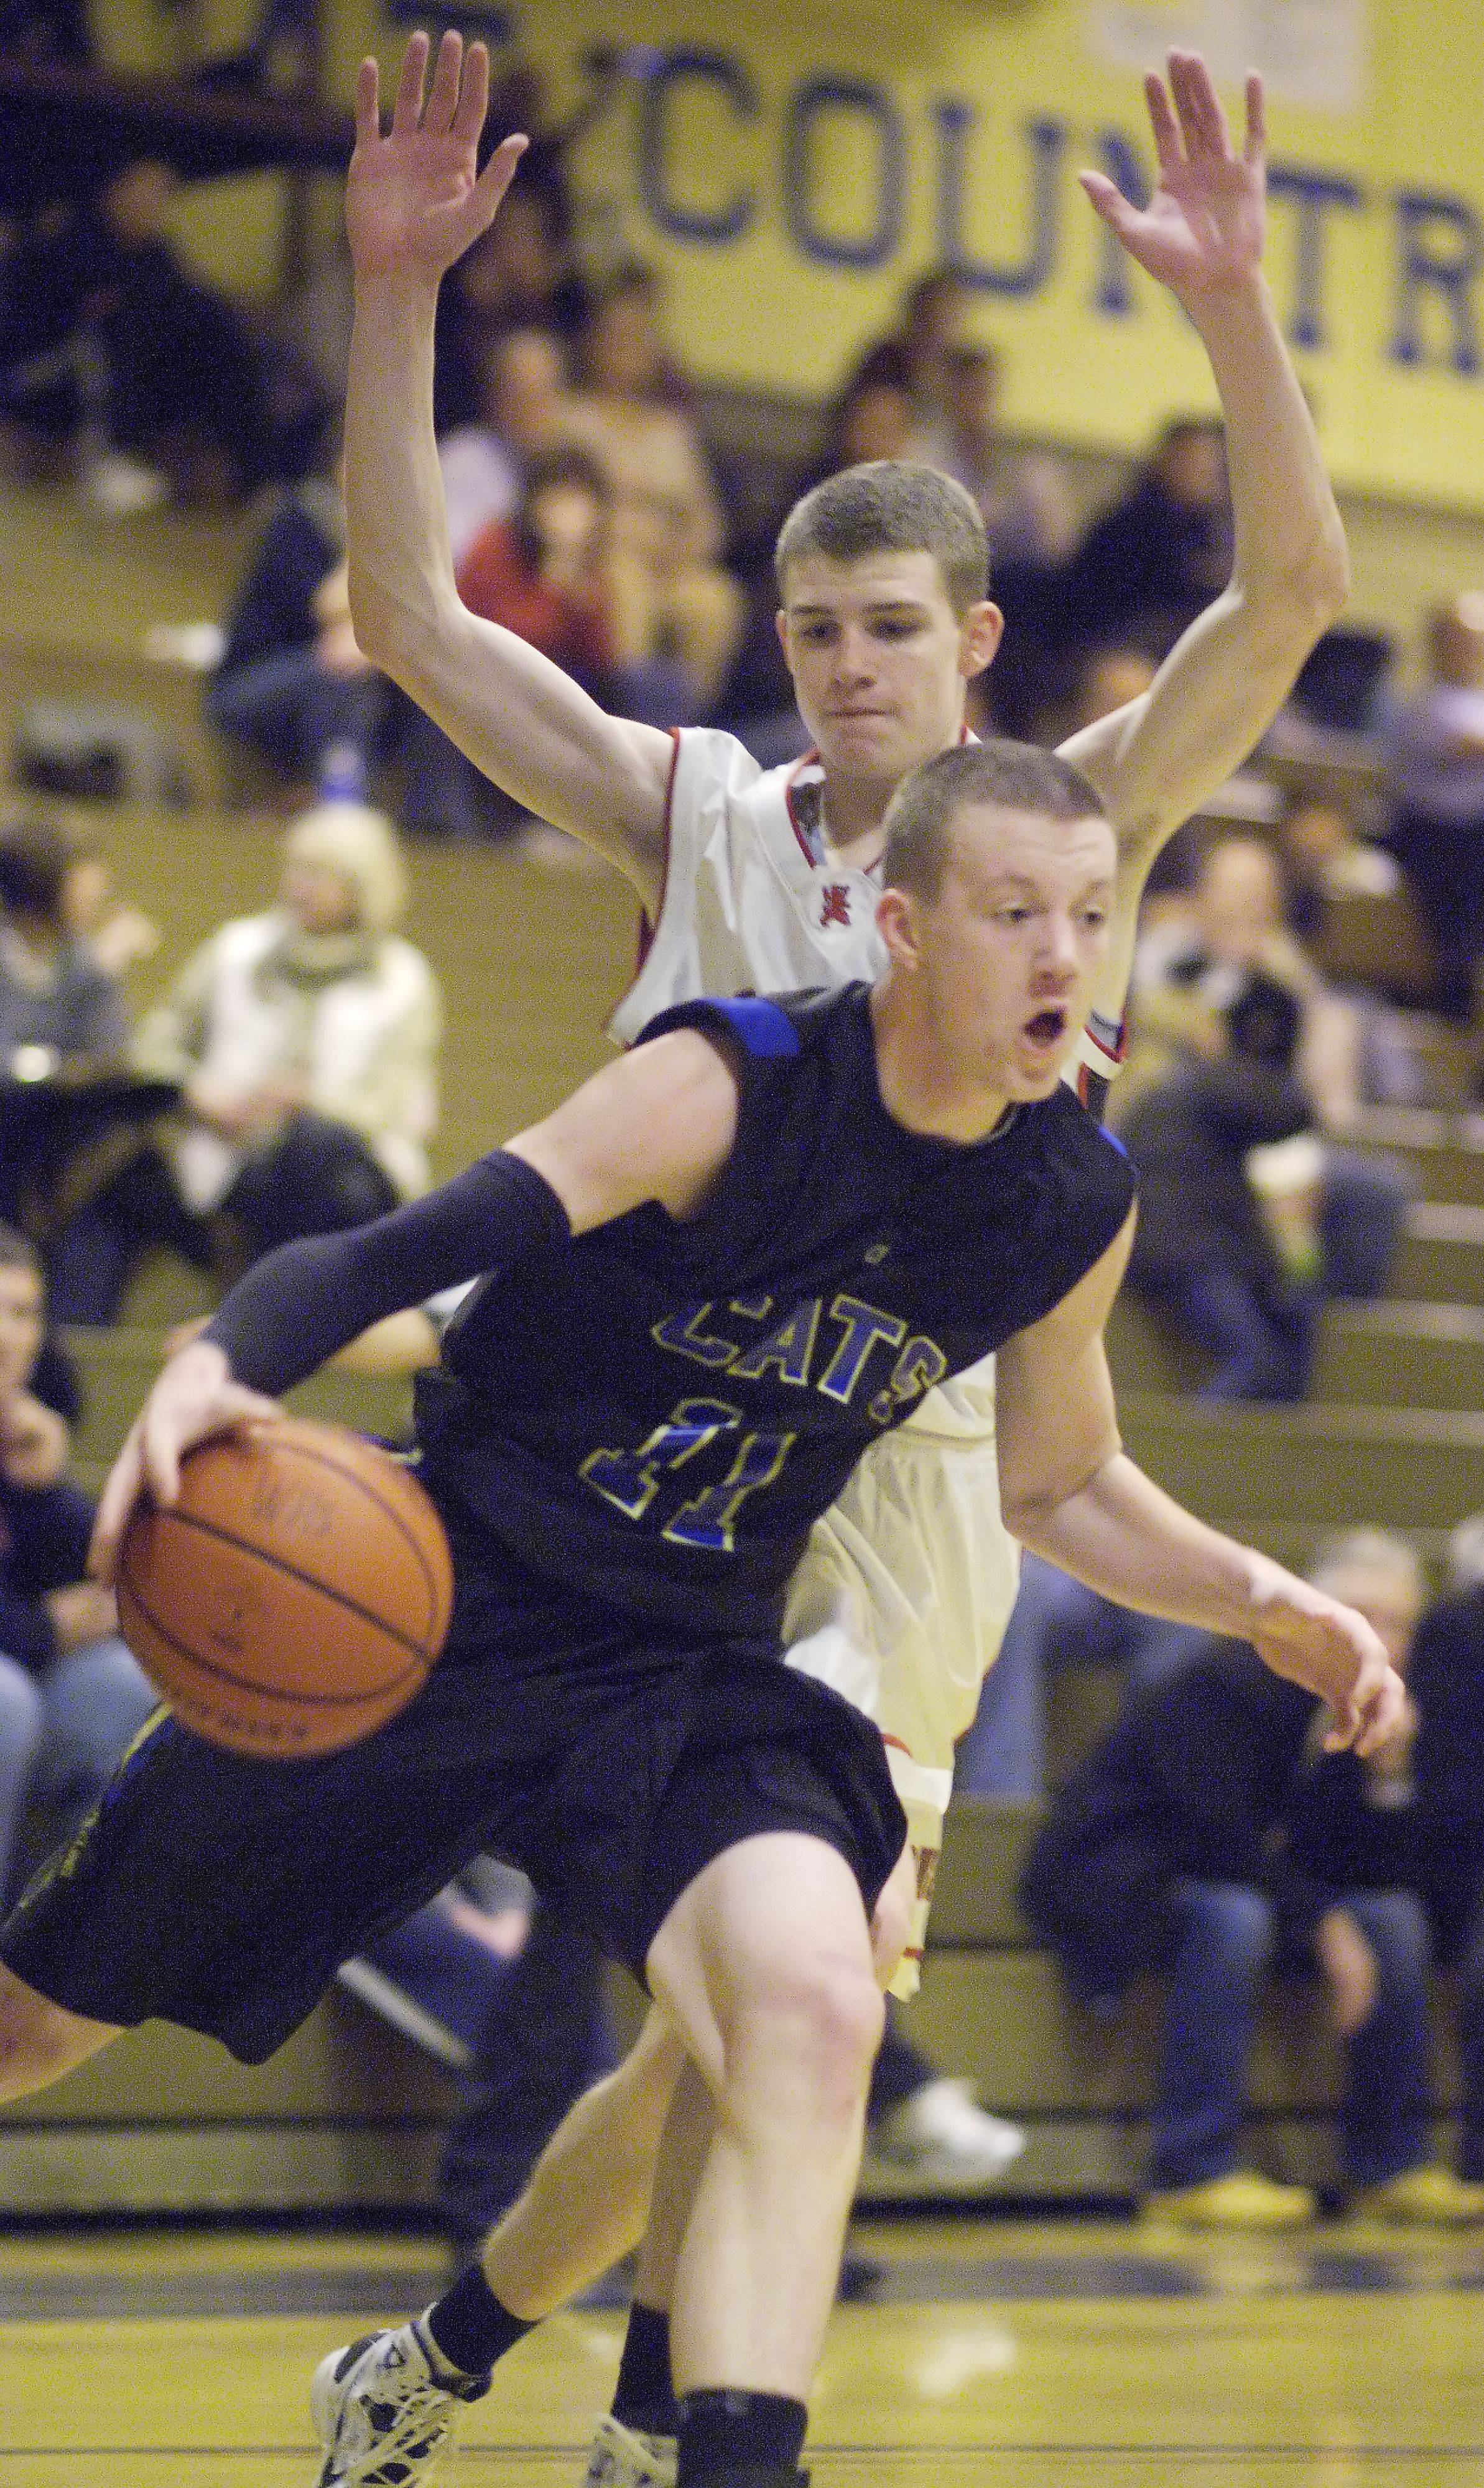 Wheeling's Ricky Schwind drives past St. Viator's Kevin Walsh during the Wheeling Tournament Wednesday.